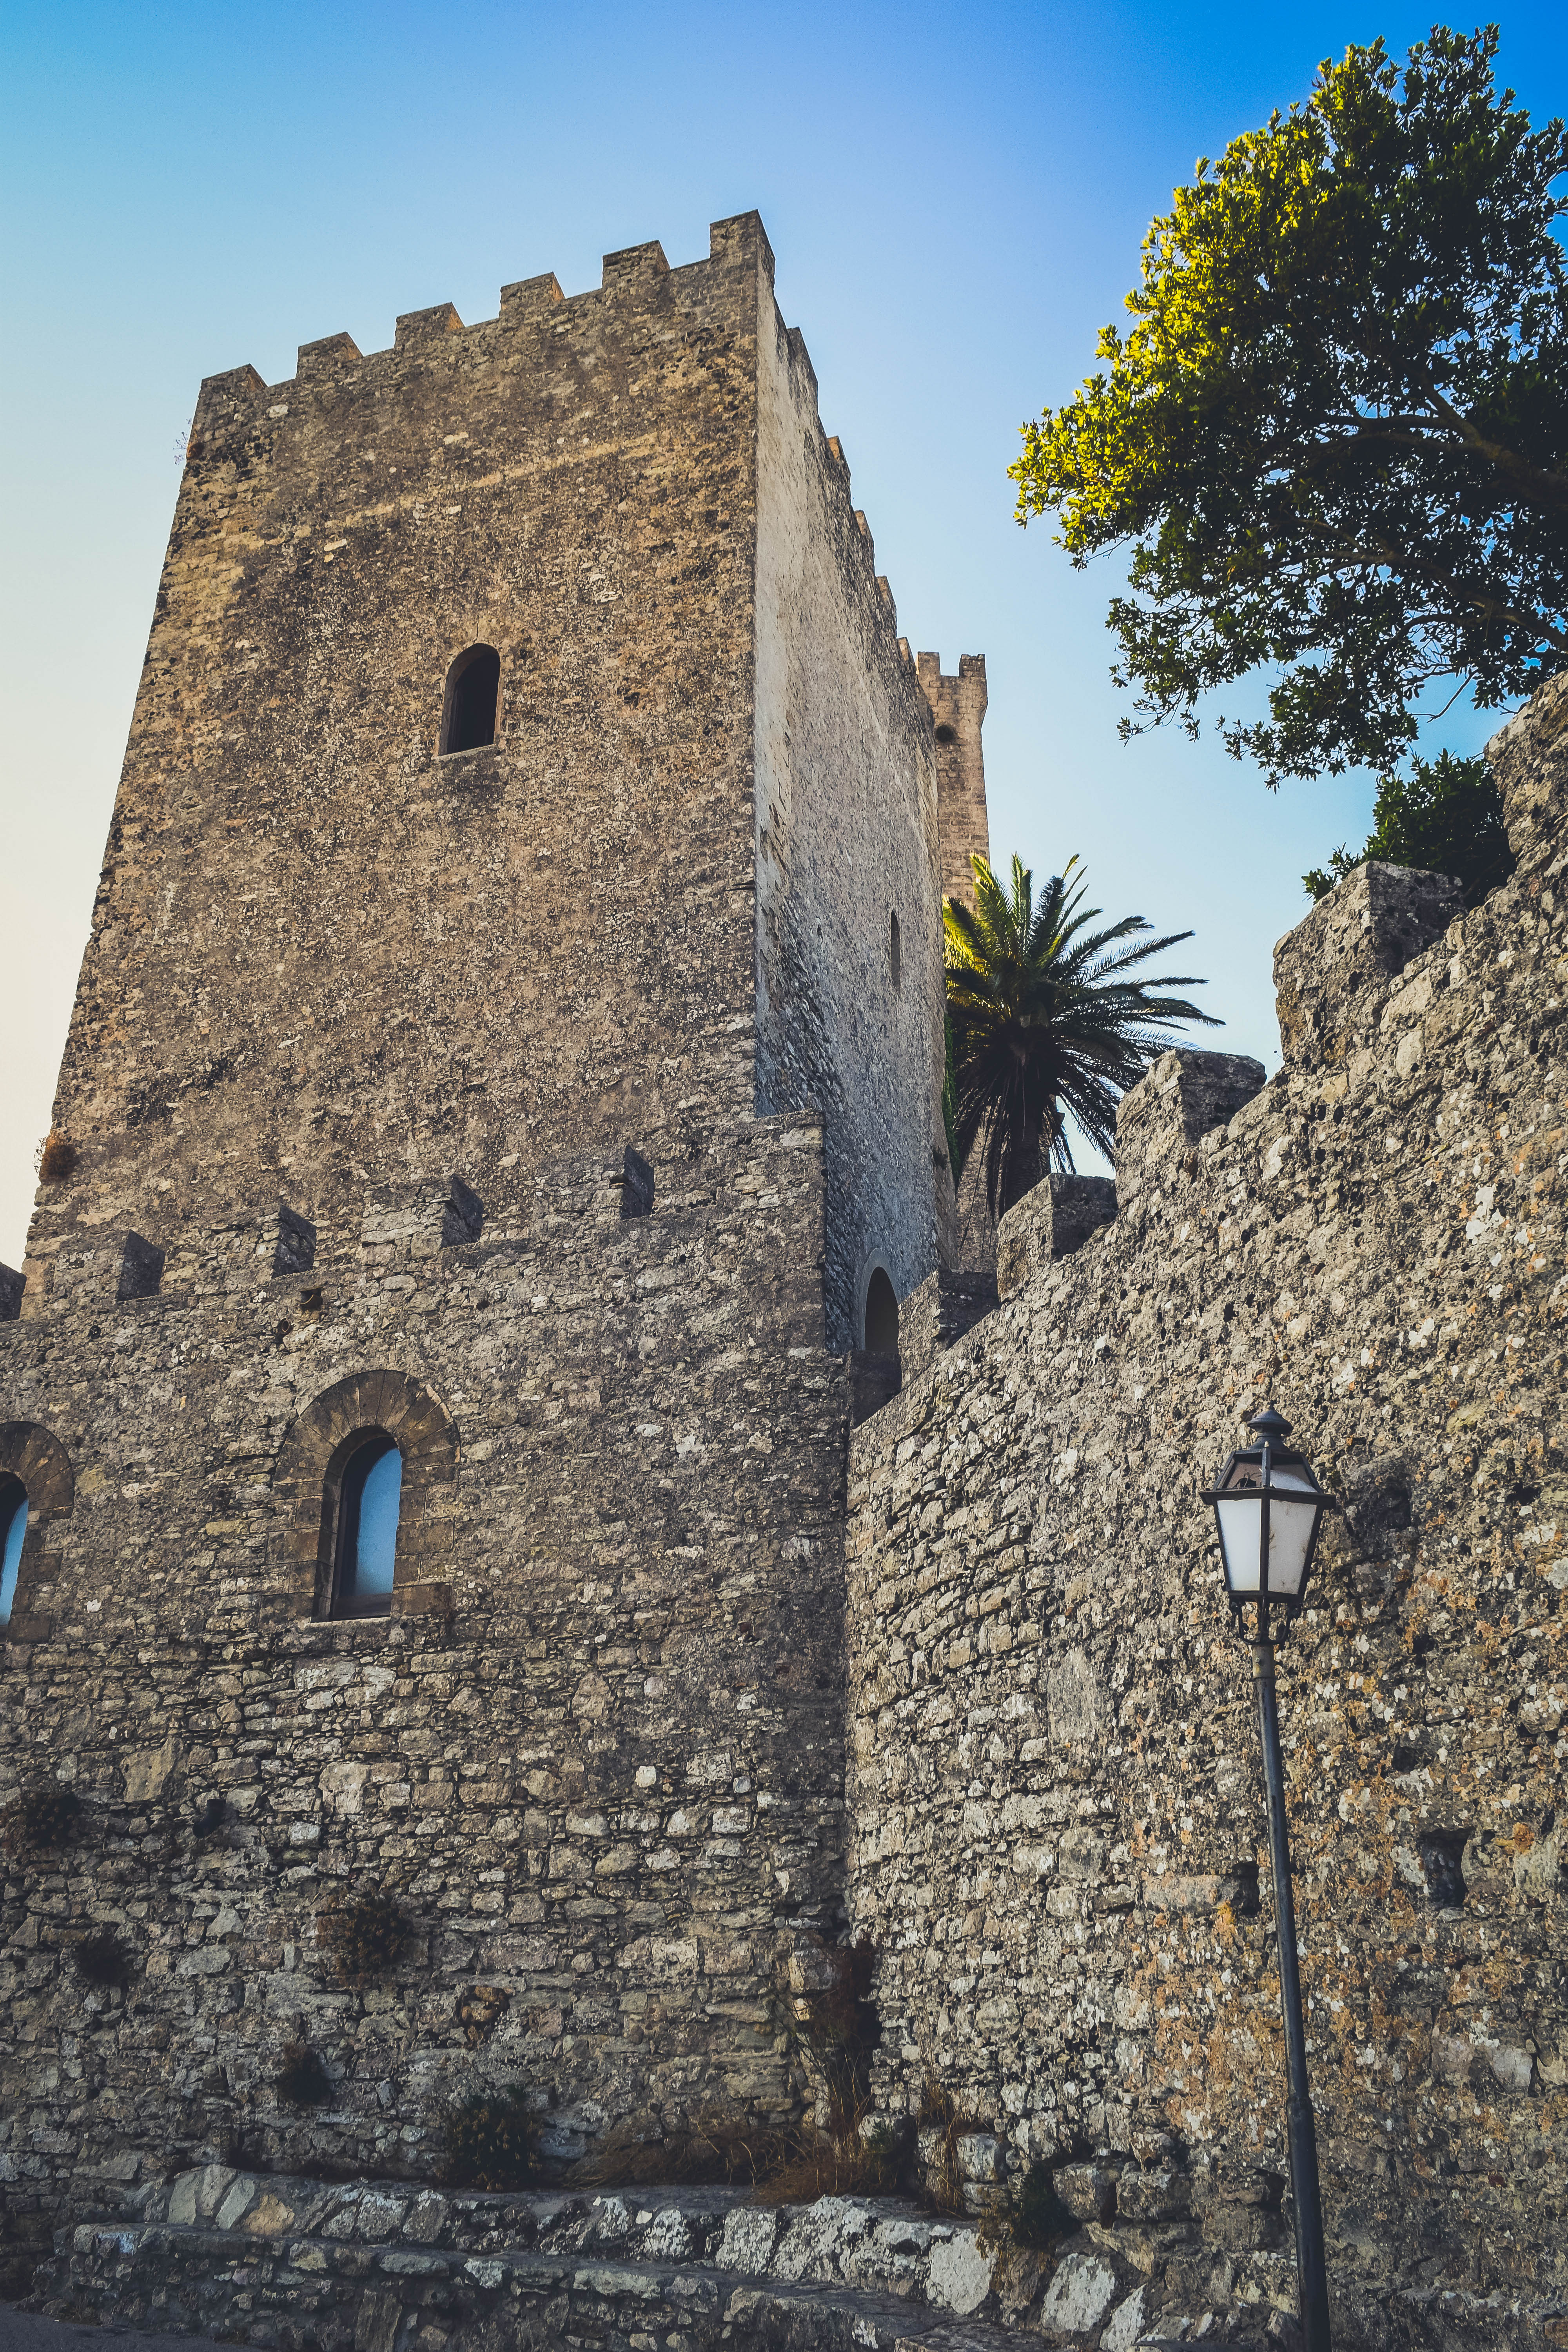 Erice_Where to go in sicily_what to do in erice_sicily_medieval town_city of 100 churches_castle_maria grammatico_food_travel guide_medieval city